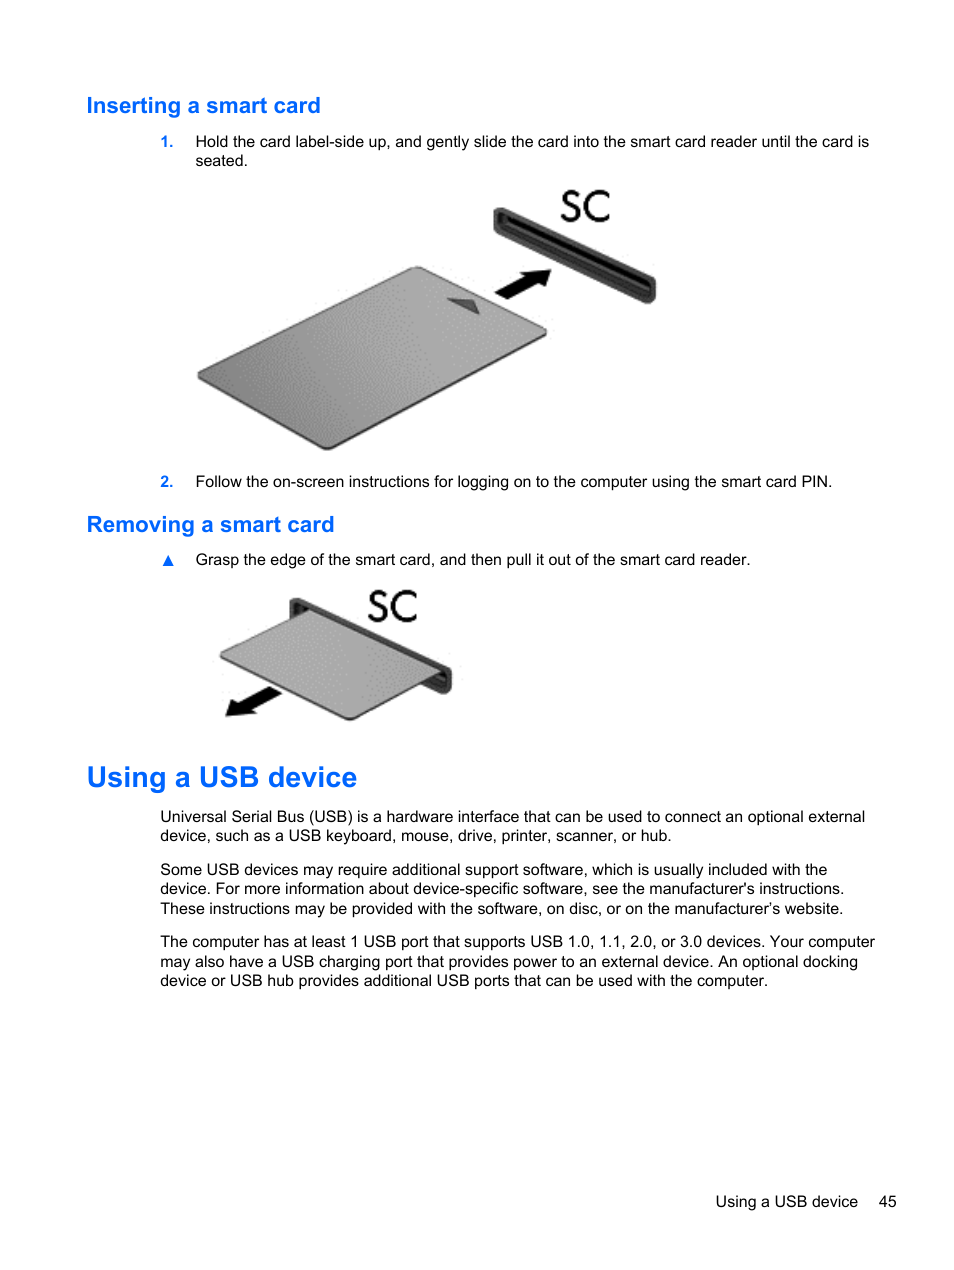 Inserting A Smart Card Removing Using Usb Device Nikon D40 Cable Schematic Hp Elitebook 840 G1 Notebook Pc User Manual Page 55 108